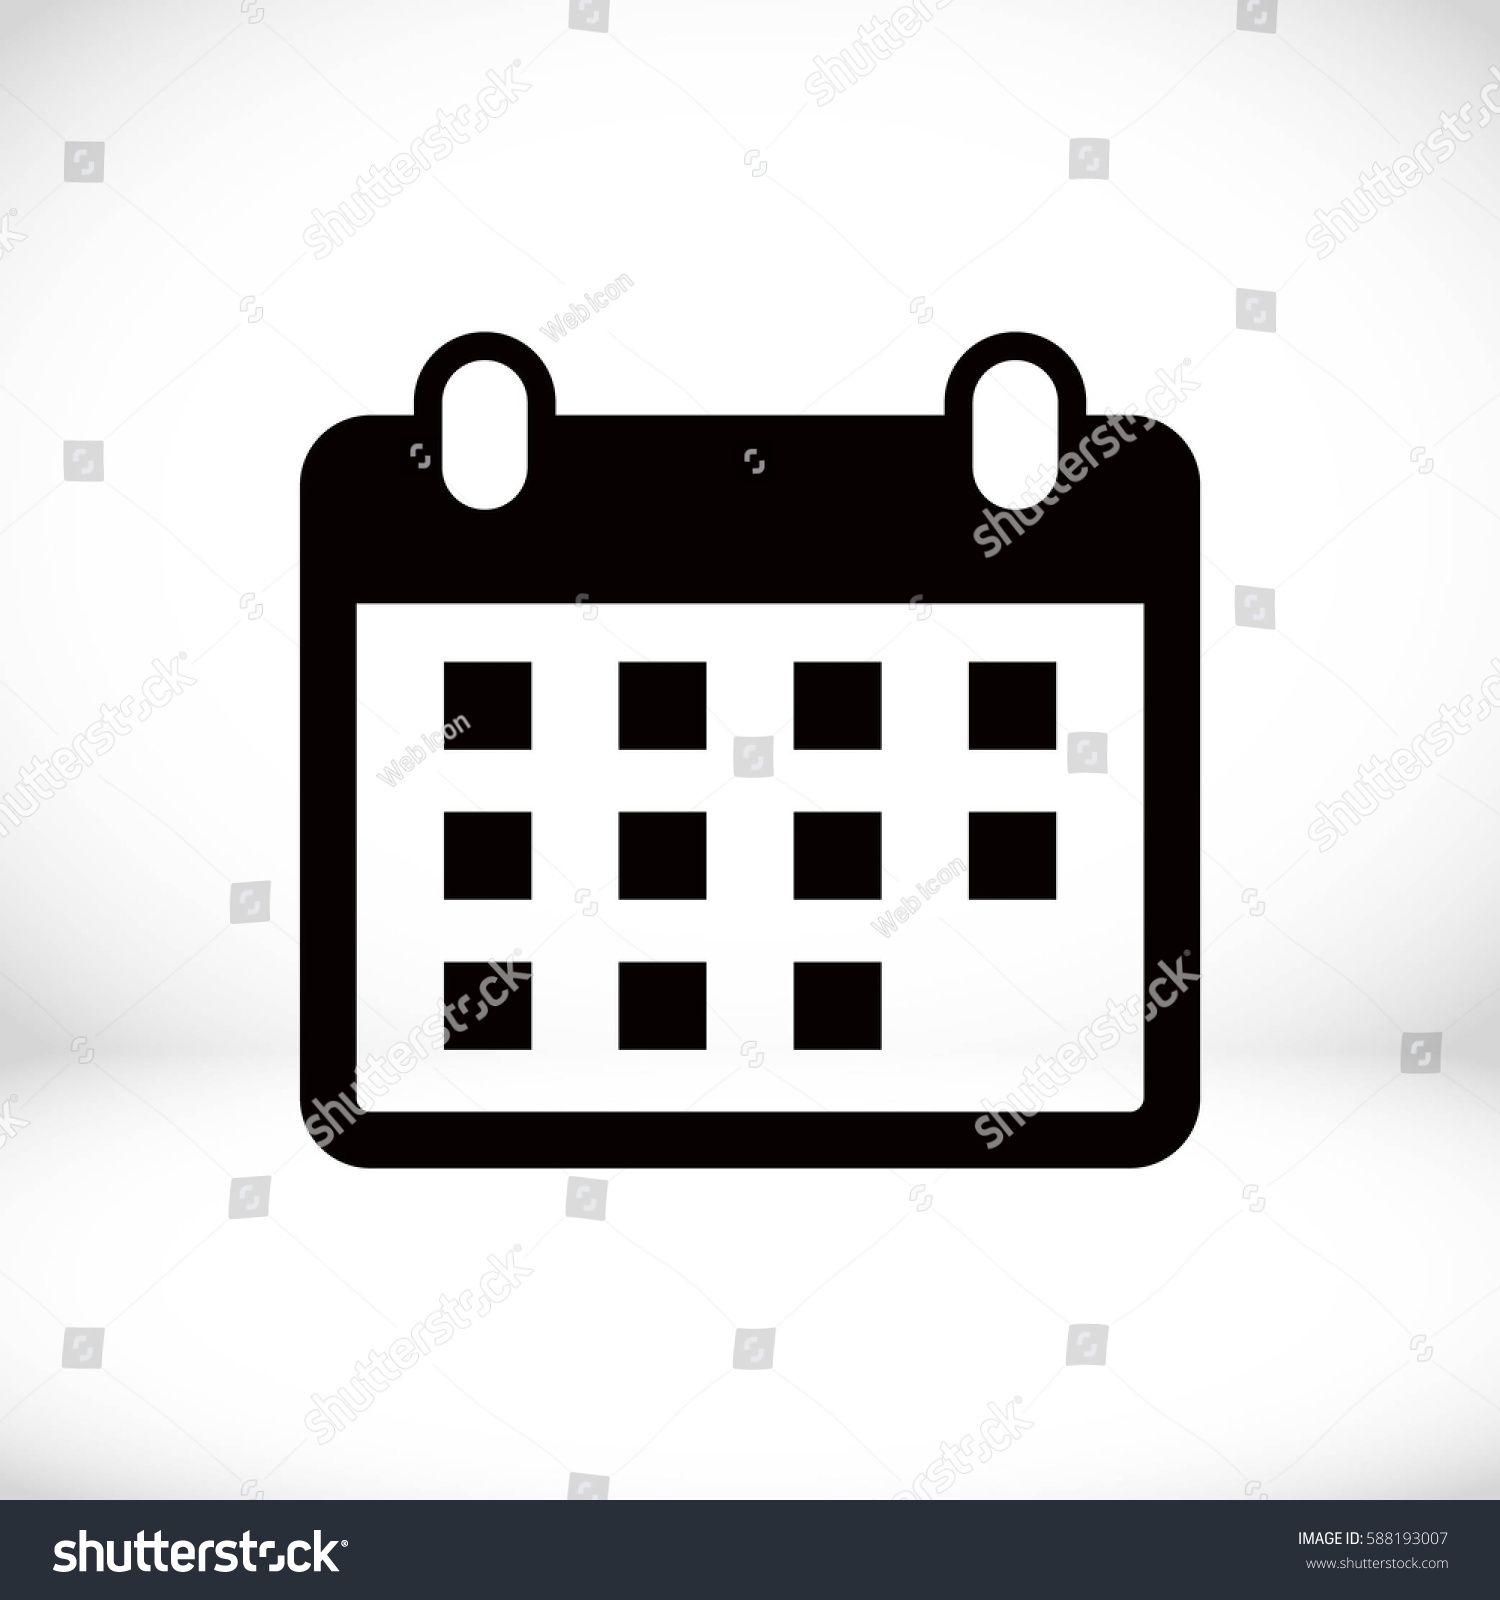 Calendar Illustration Vector : Calendar icon stock vector illustration flat